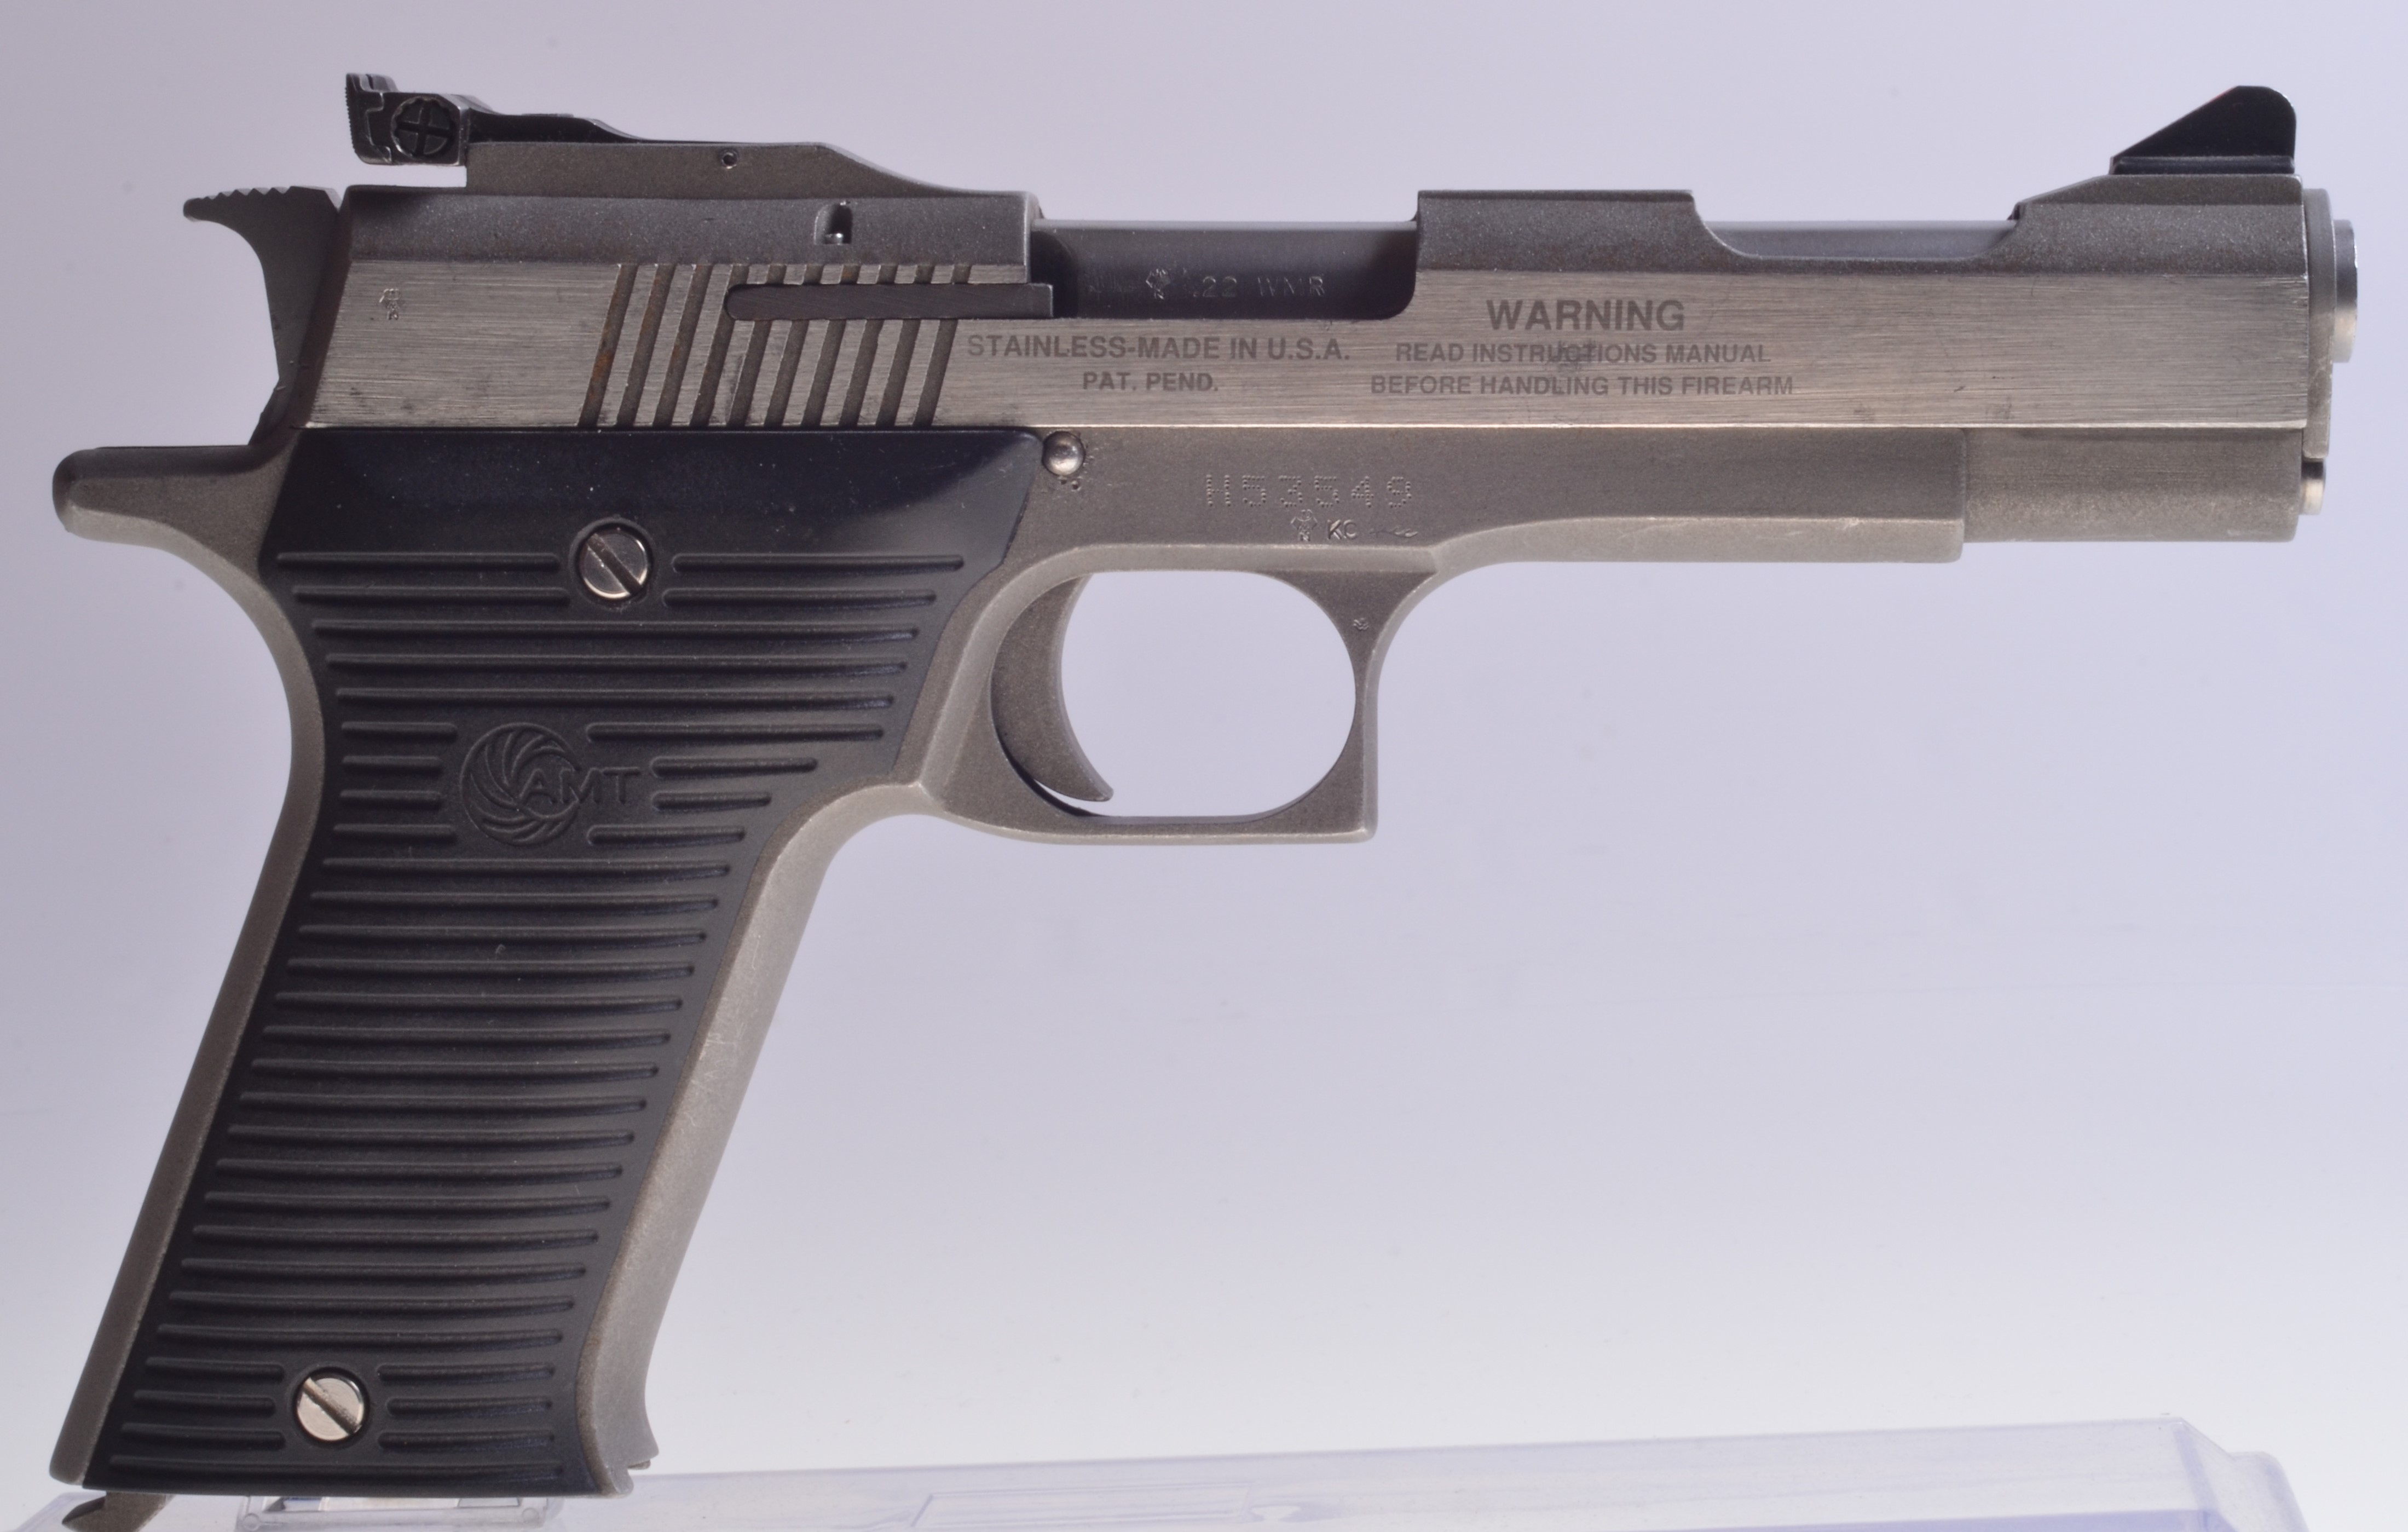 AMT AUTOMAG V .50AE for sale